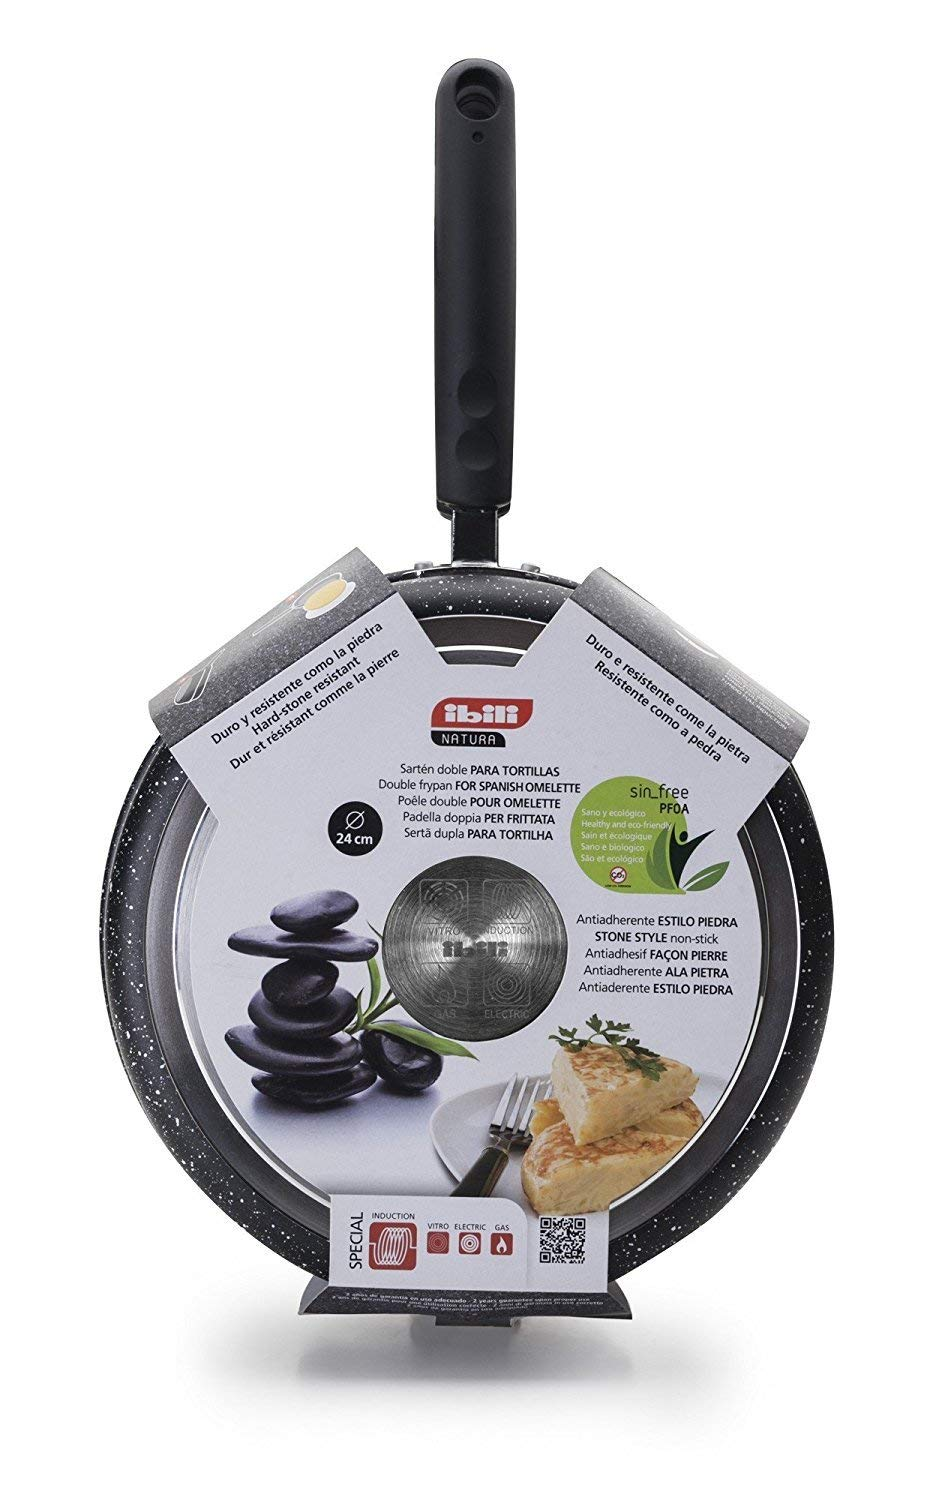 Amazon.com: Ibili Stone Quartz Induction Omelette Pan Tortilla ...